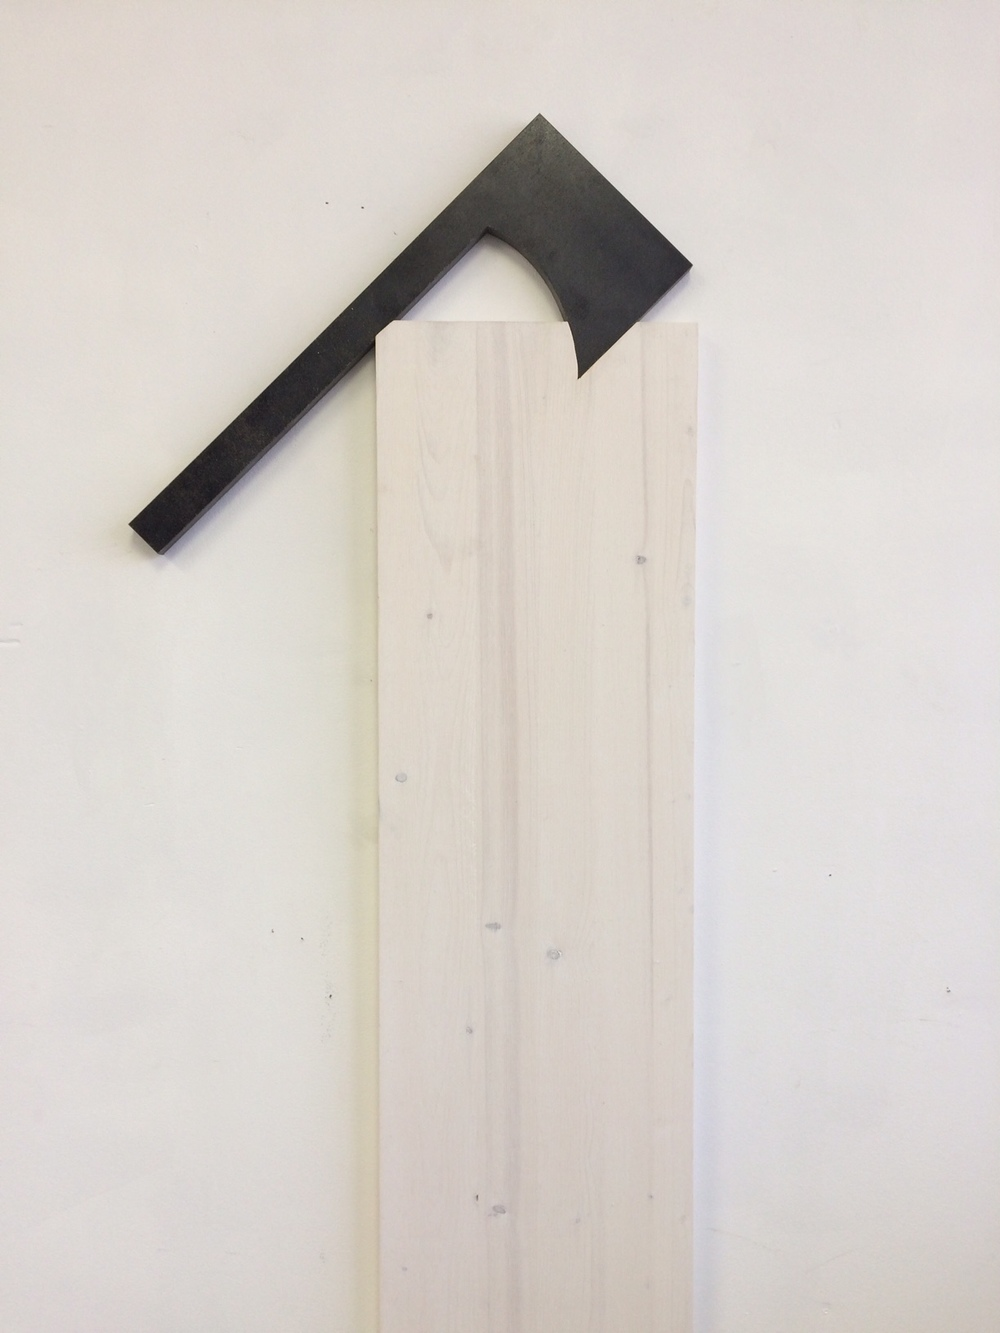 Untitled (hatchet), 2016. Steel, wood, stain, 41.5 x 15.75 x .75 inches (sold)